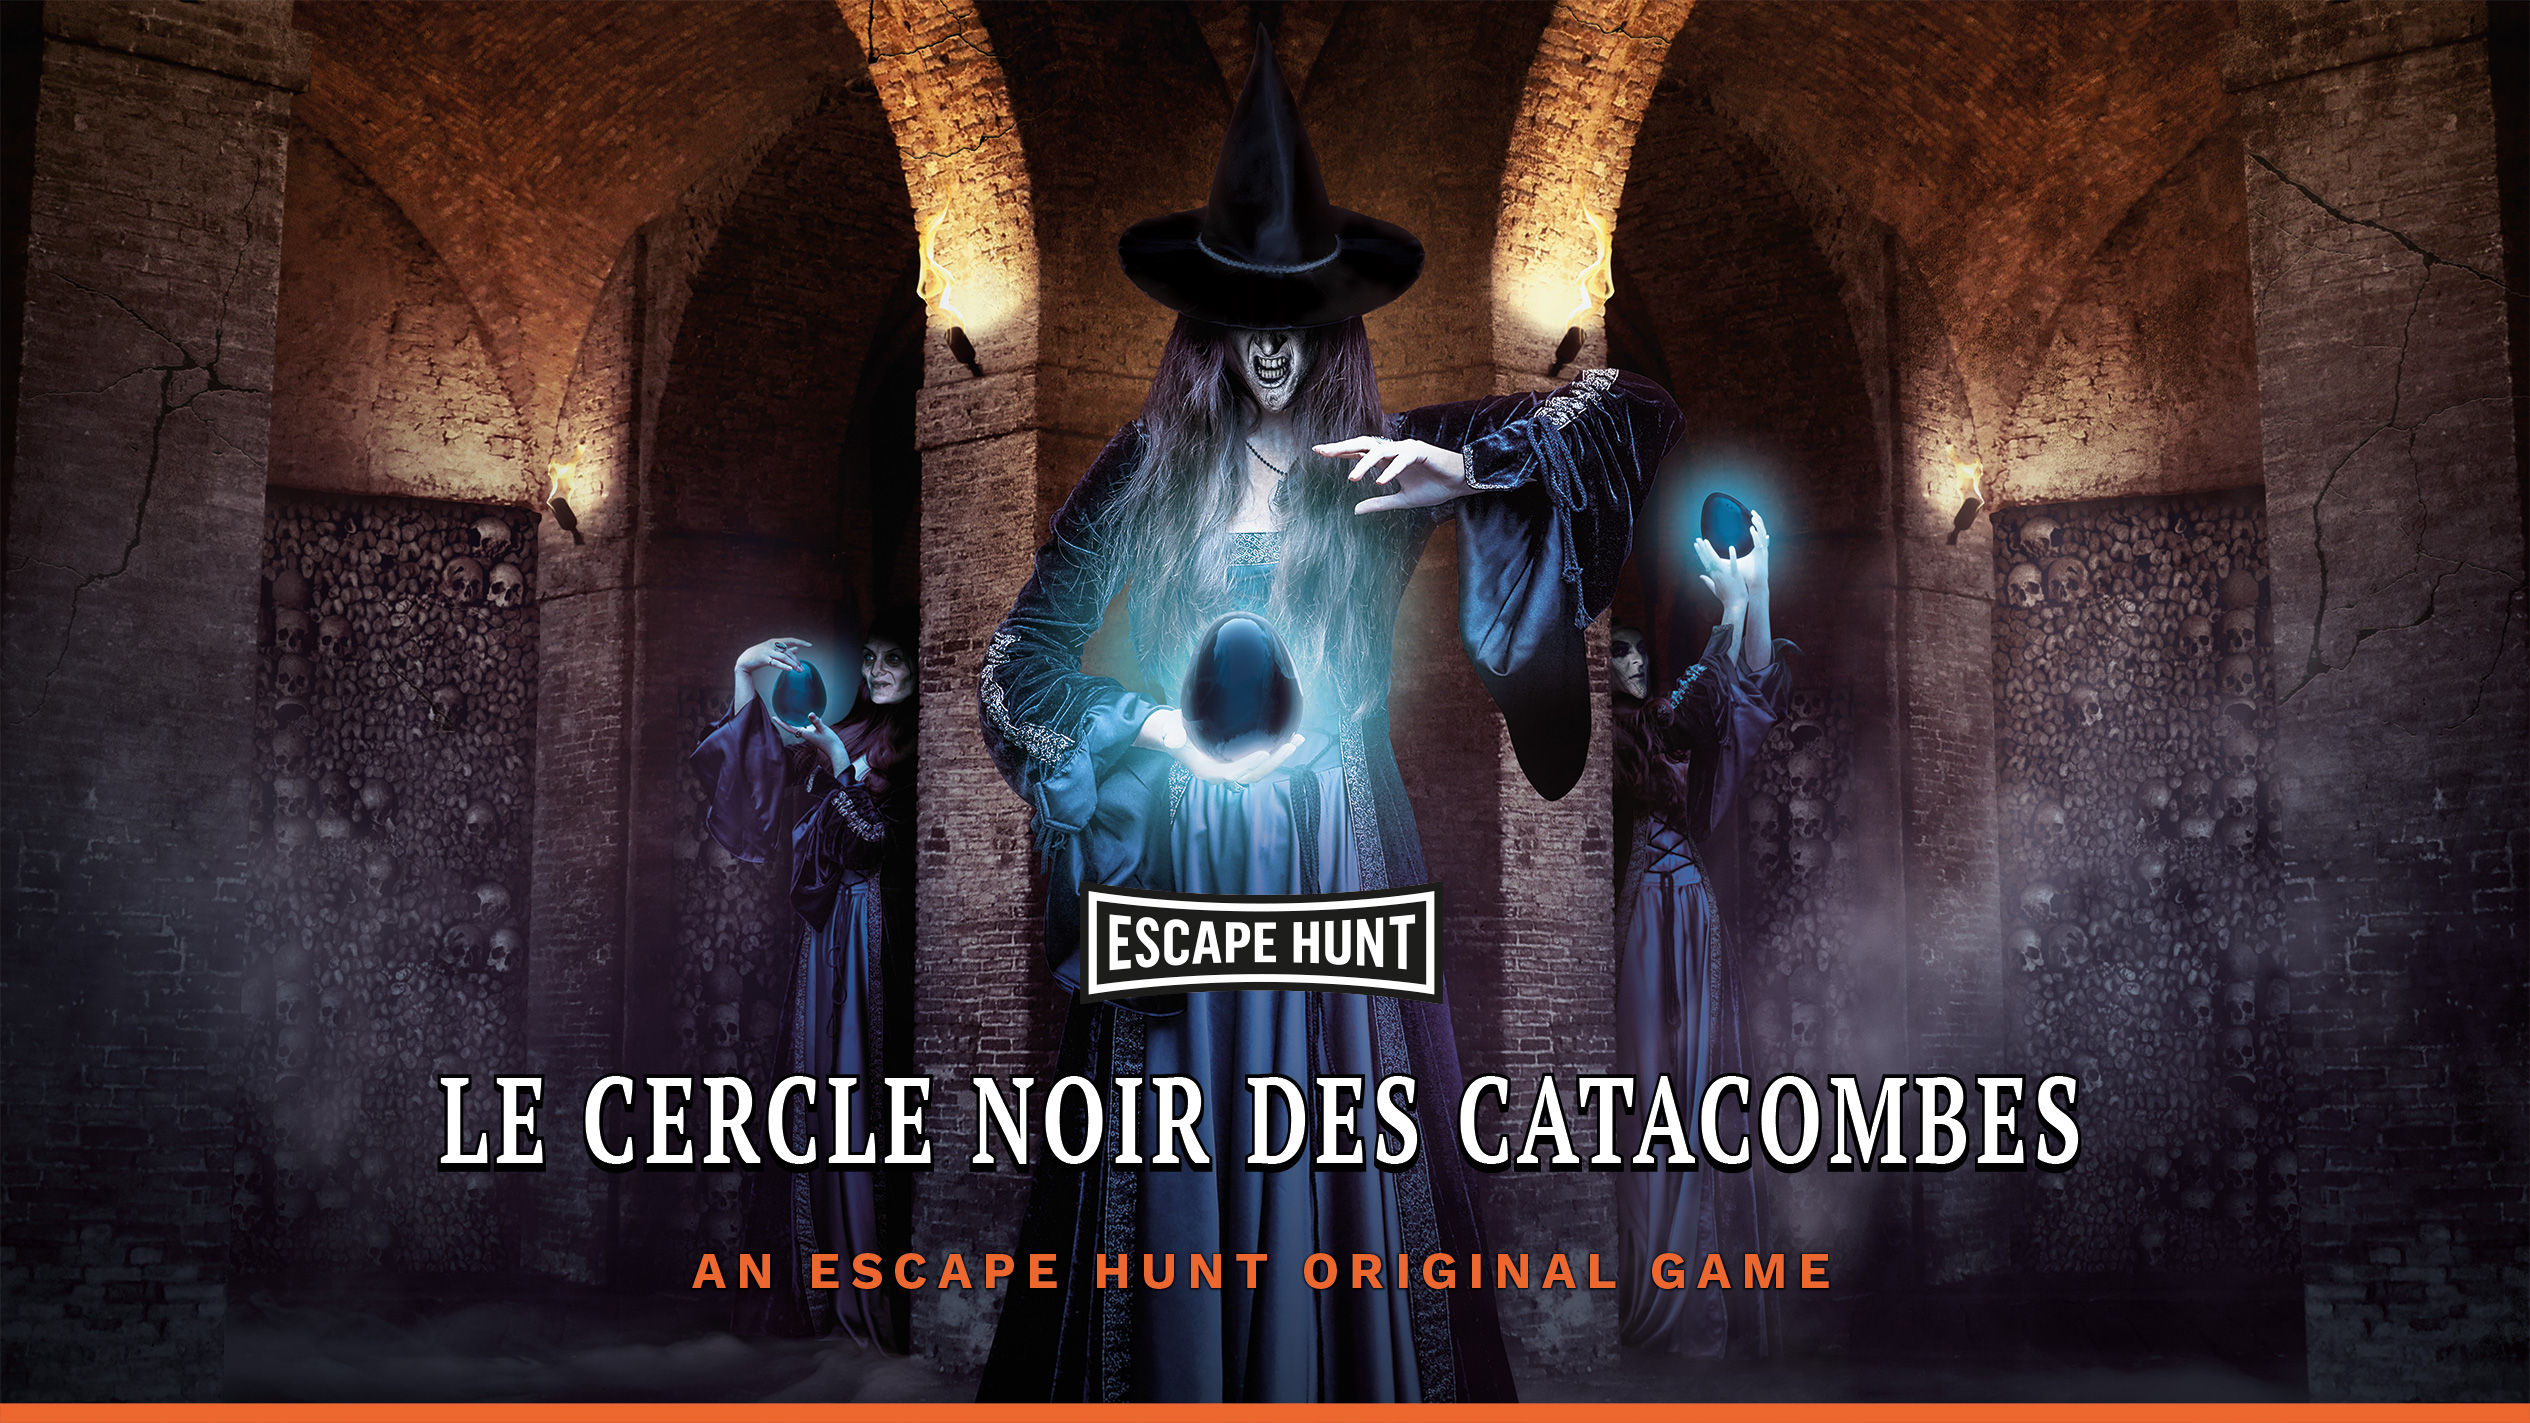 Escape Hunt Clermont Ferrand - Escape Game Clermont Ferrand Le Cercle Noir Des Catacombes